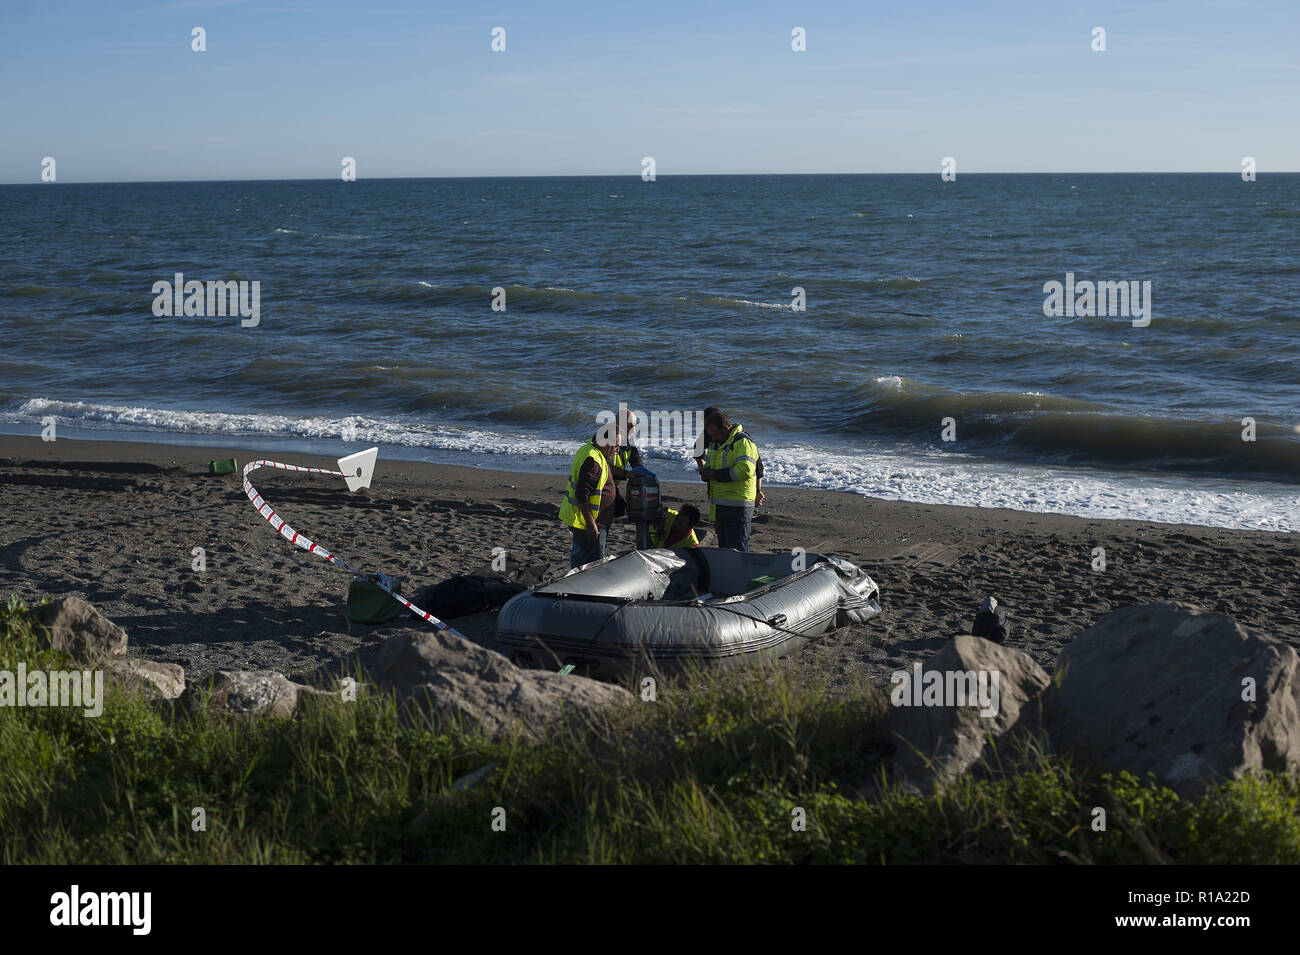 Malaga, MALAGA, Spain. 10th Nov, 2018. Police officers seen inspecting the dinghy after arriving on the beach with a group of migrants.A dinghy with migrants and two dead arrived at the Chilches beach near the coast of Velez Málaga, in Malaga. According to the media and witnesses, some of the migrants from Morocco escaped at the beach while the two corpses were found inside the small boat. Credit: Jesus Merida/SOPA Images/ZUMA Wire/Alamy Live News - Stock Image